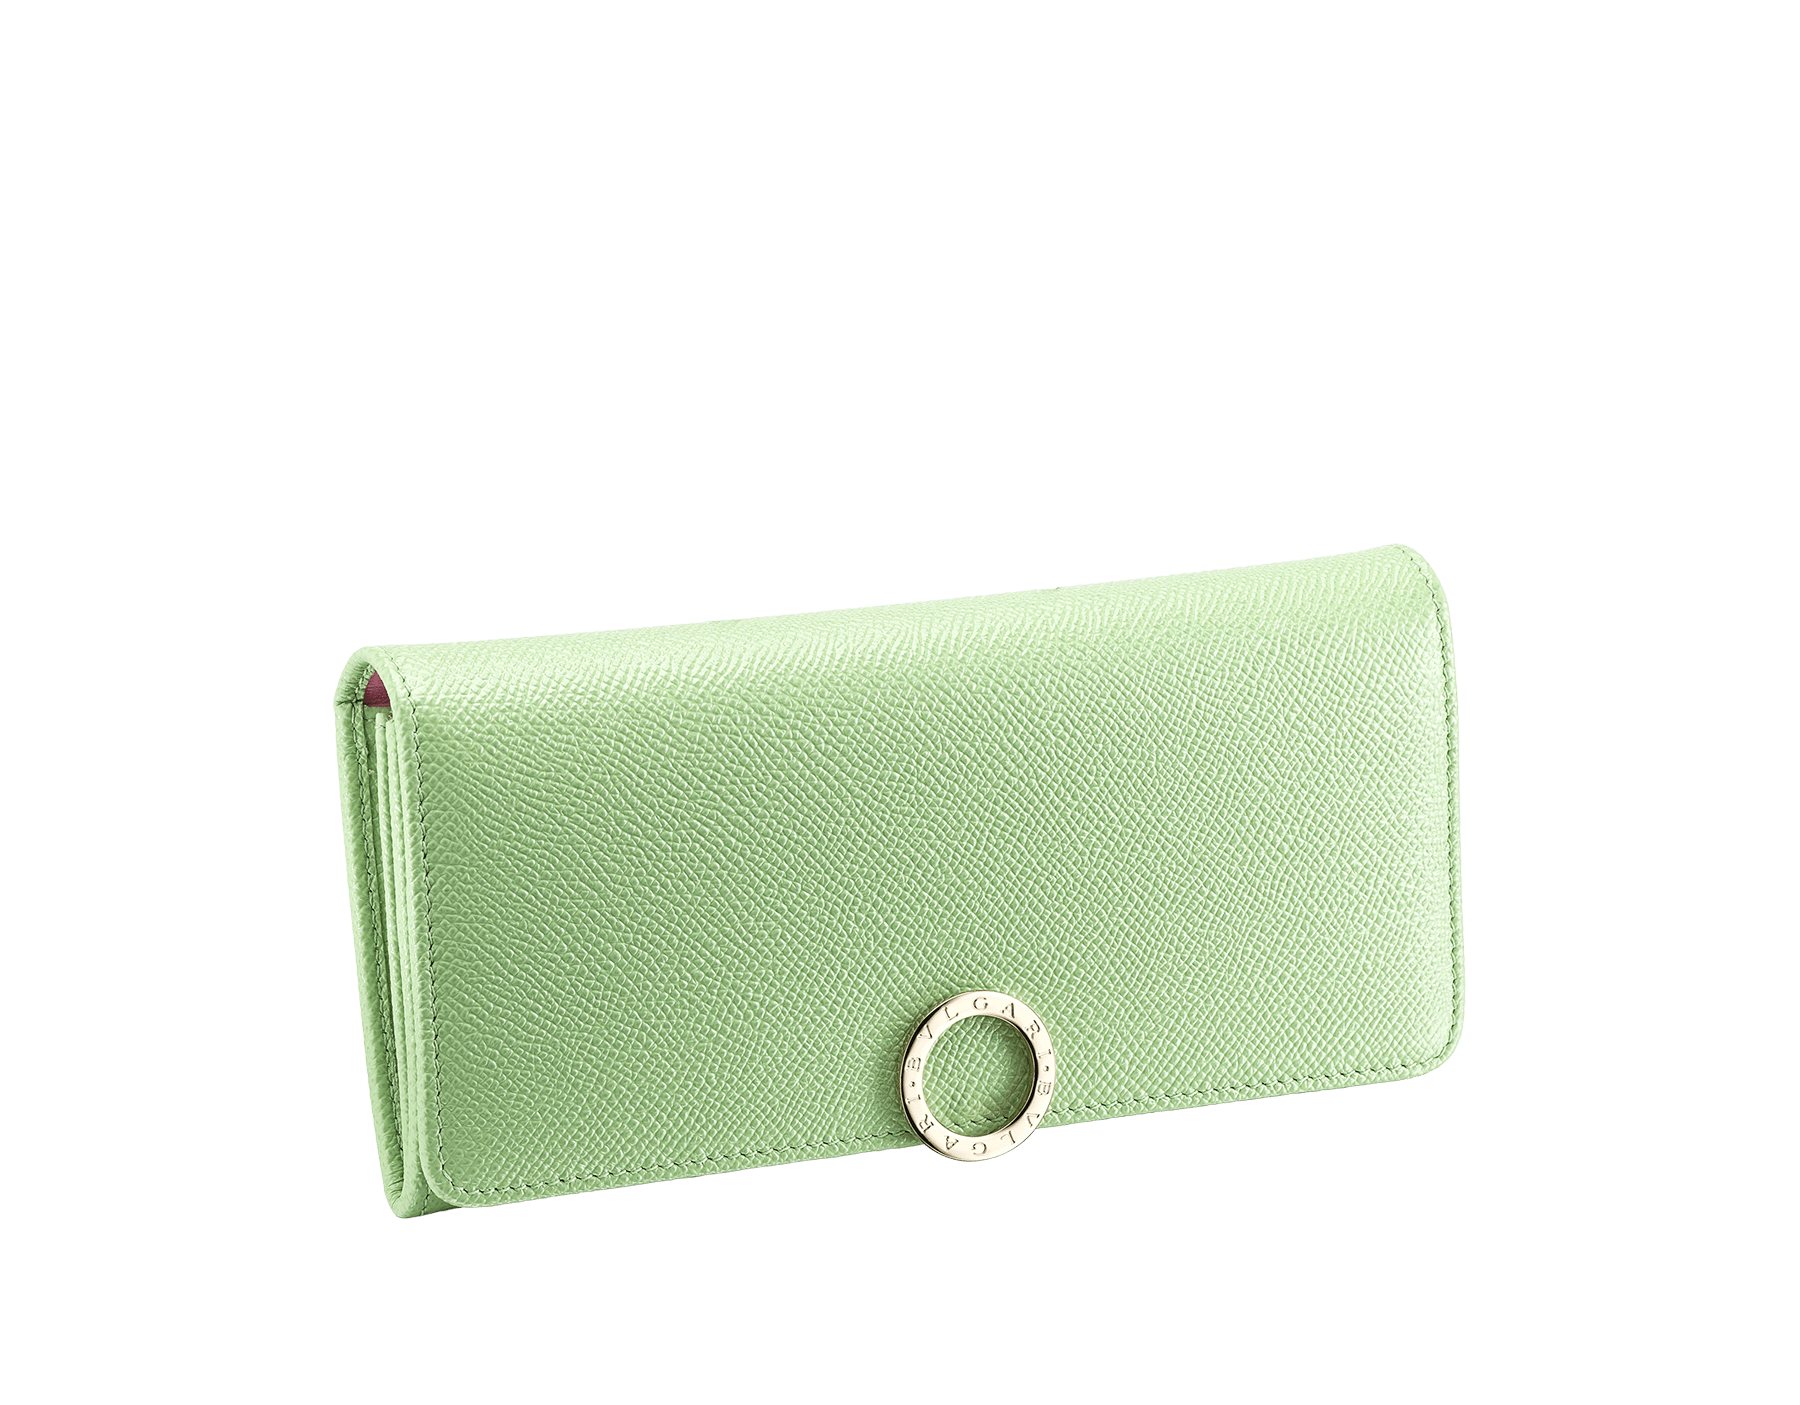 """BVLGARI BVLGARI"" large wallet in mint bright grain calf leather and taffy quartz nappa leather. Iconic logo clip closure in light gold plated brass. 579-WLT-SLI-POC-CLa image 1"